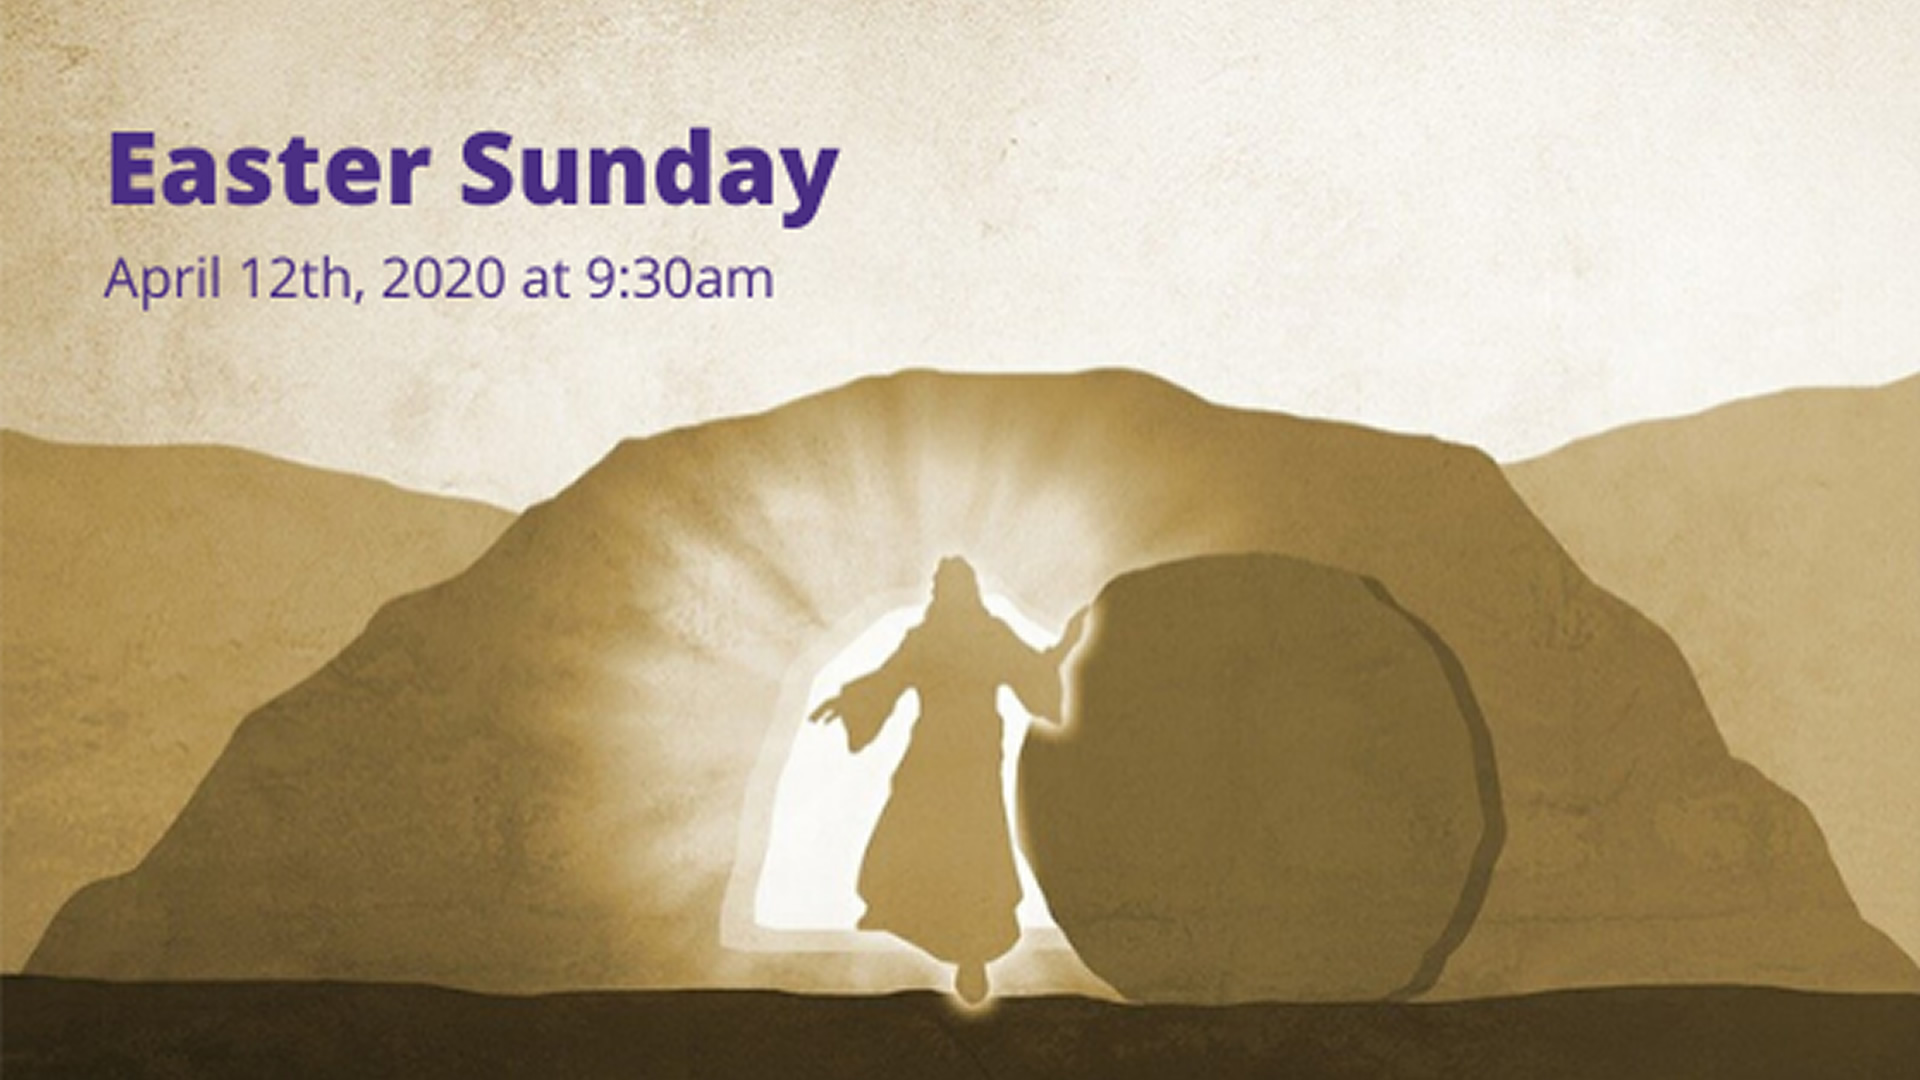 Easter Sunday - Live-streamed from the Catholic Diocese of Cleveland - Sunday, April 12th at 09:30am